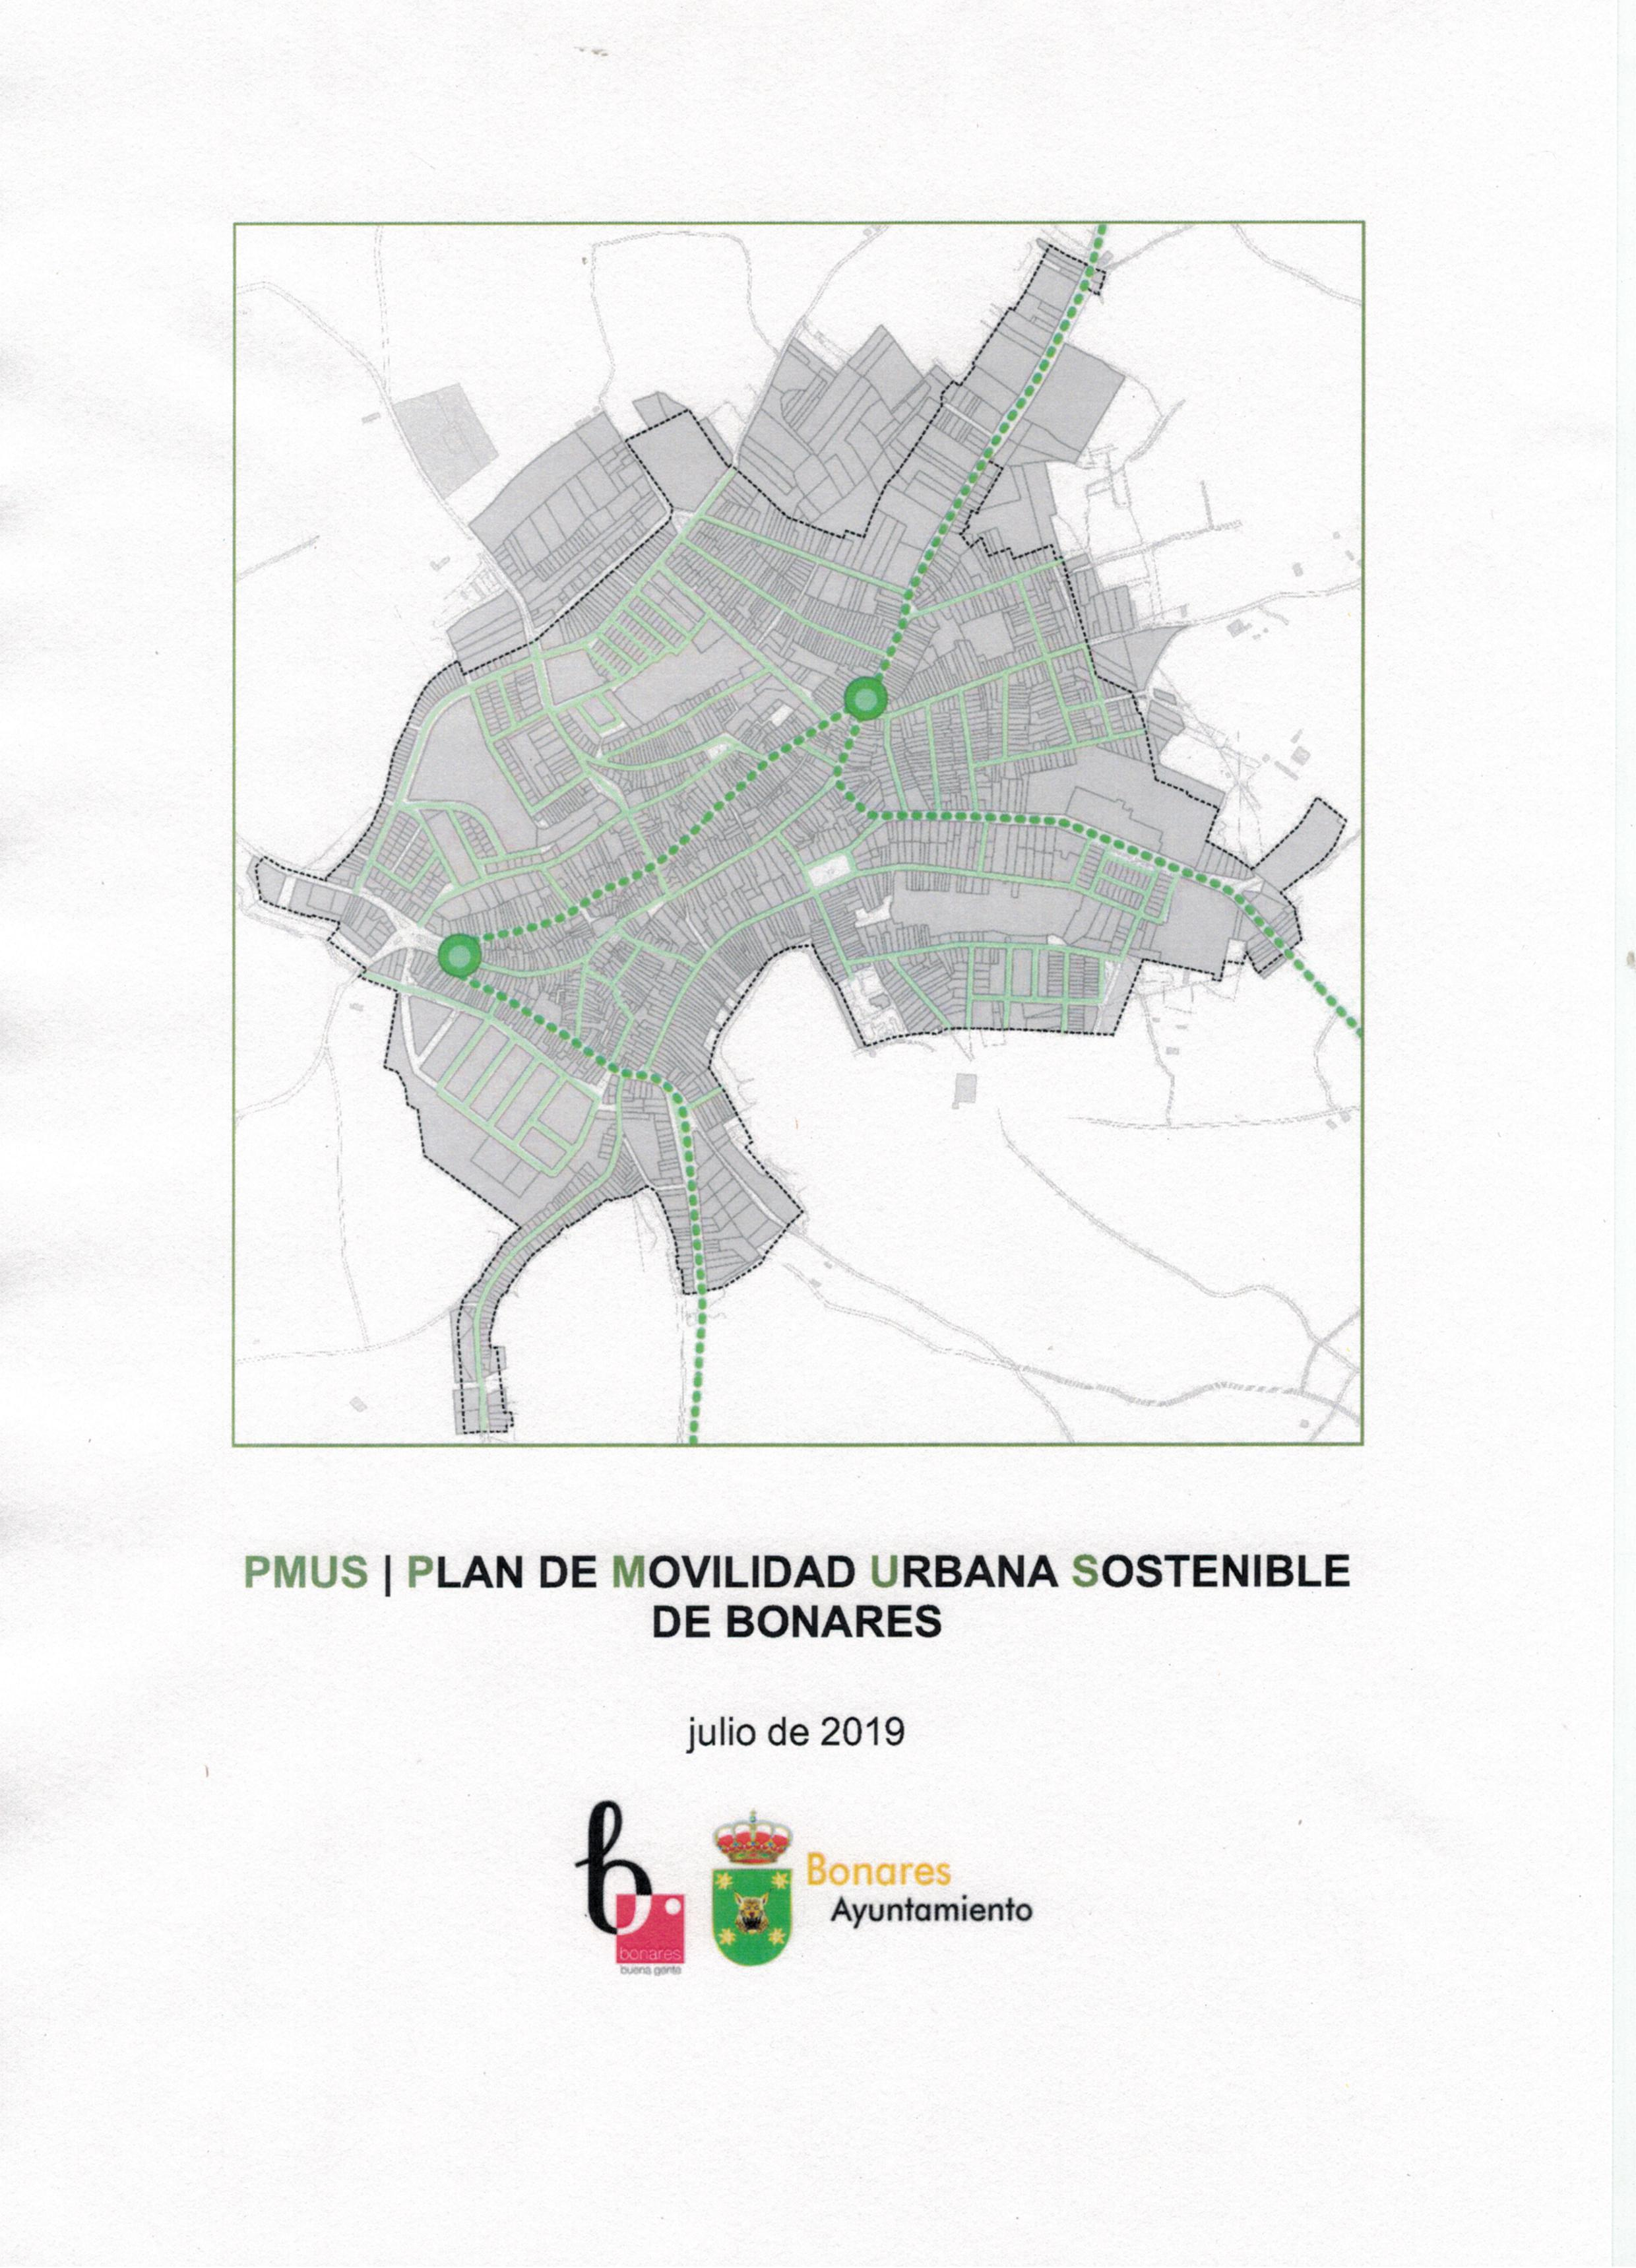 PLAN DE MOVILIDAD URBANA SOSTENIBLE DE BONARES